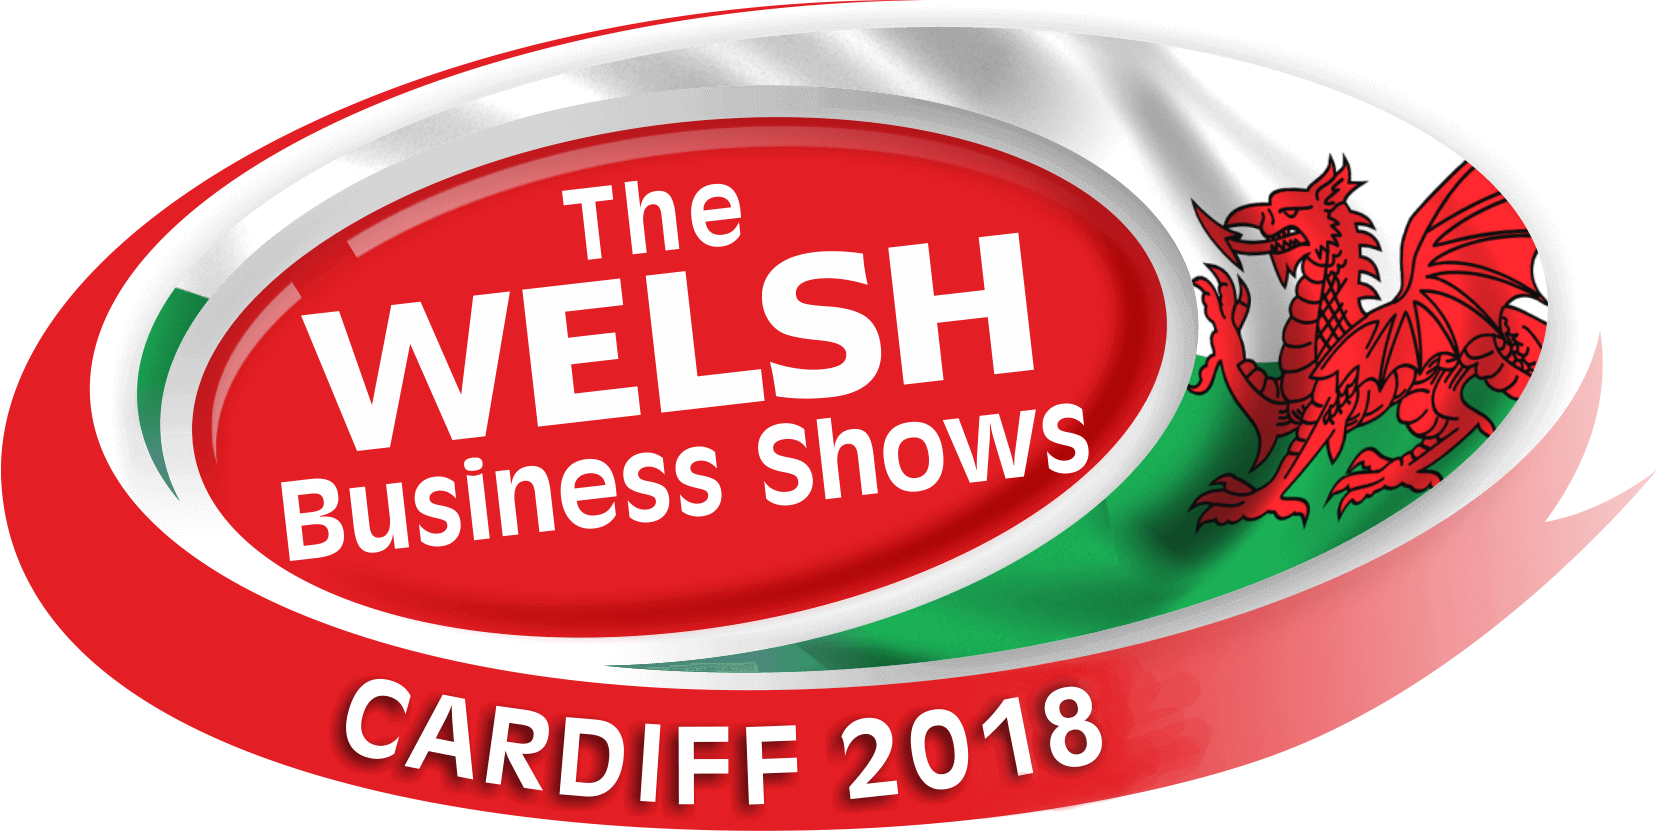 The Welsh Business Shows Cardiff